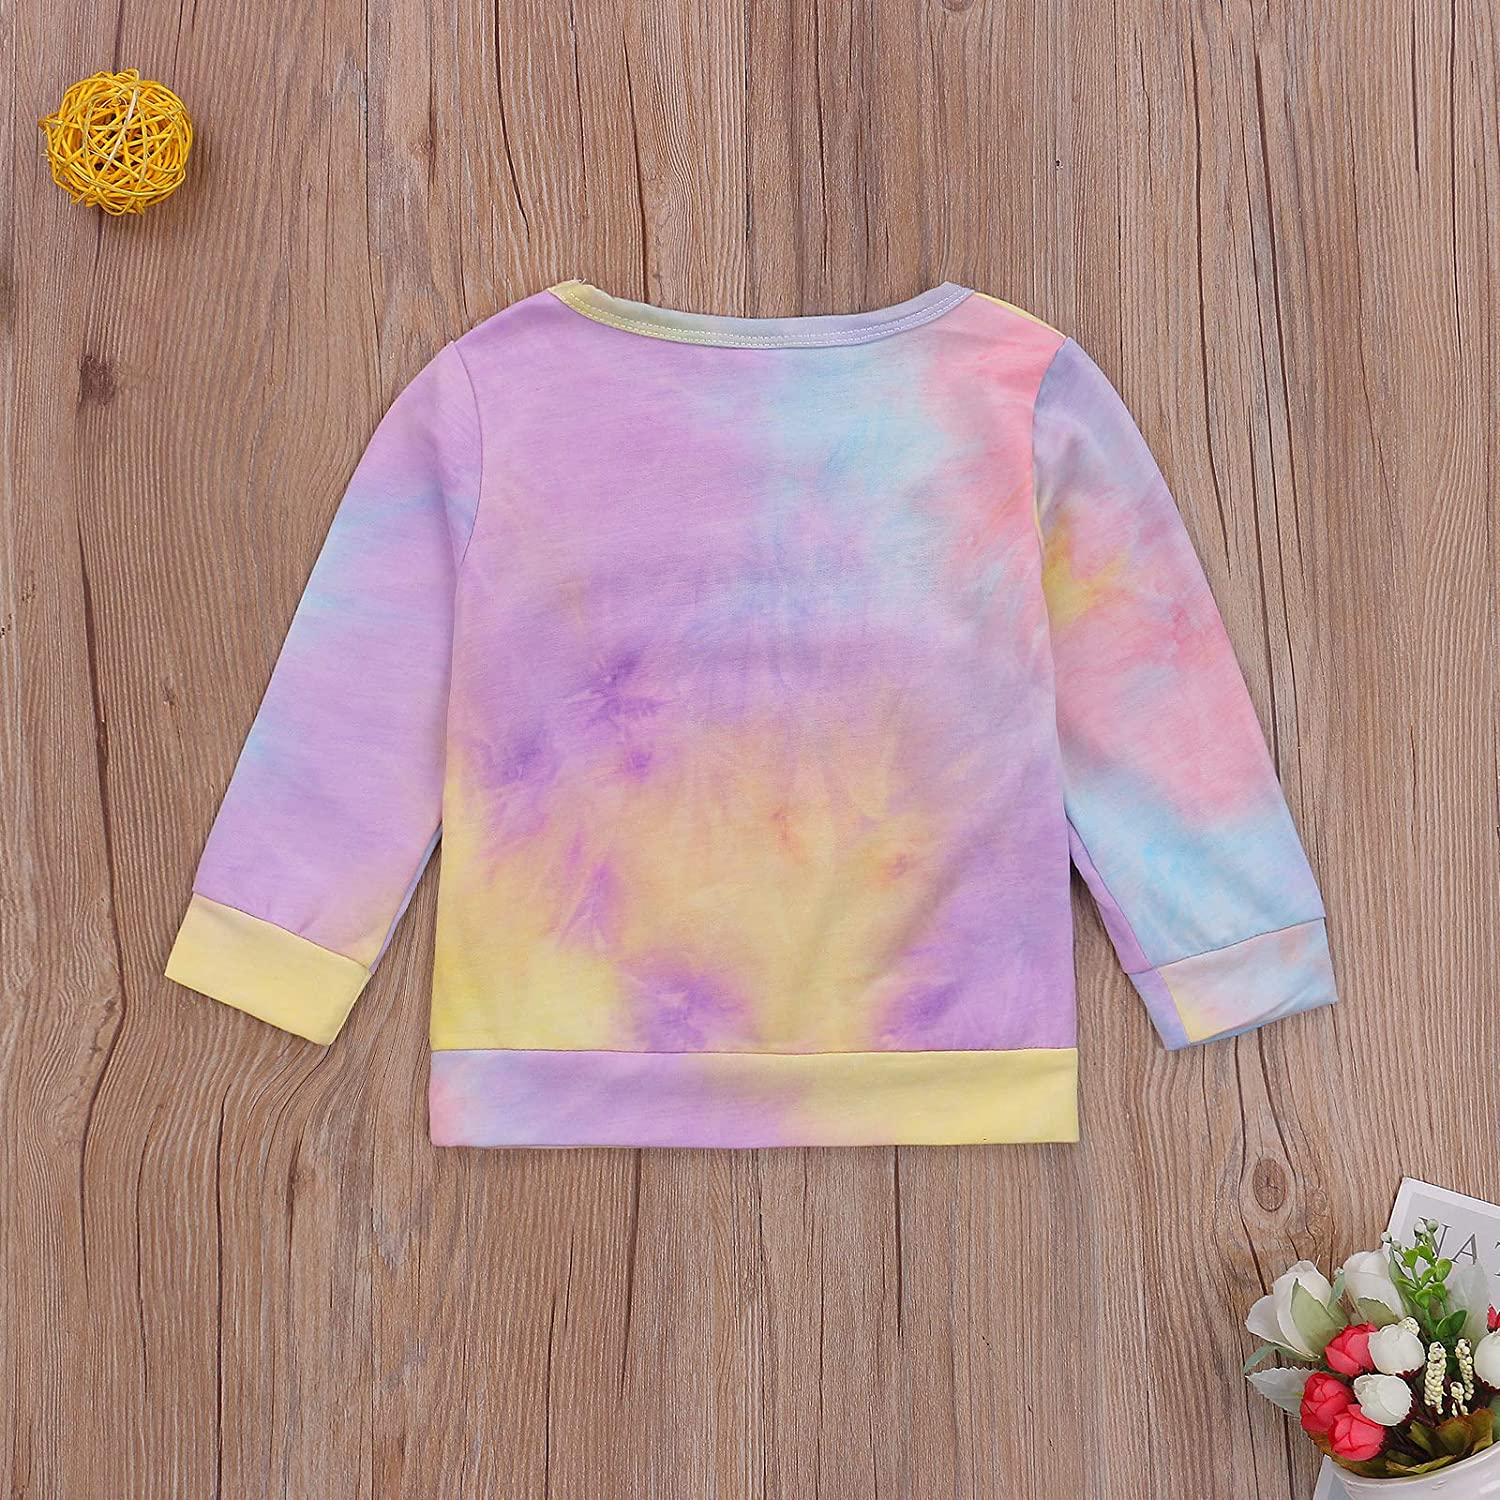 Toddler Baby Boy Girl Sweatshirt Tops Infant Long Sleeve Letter Print Pullover Sweater Blouse Fall Winter Clothes